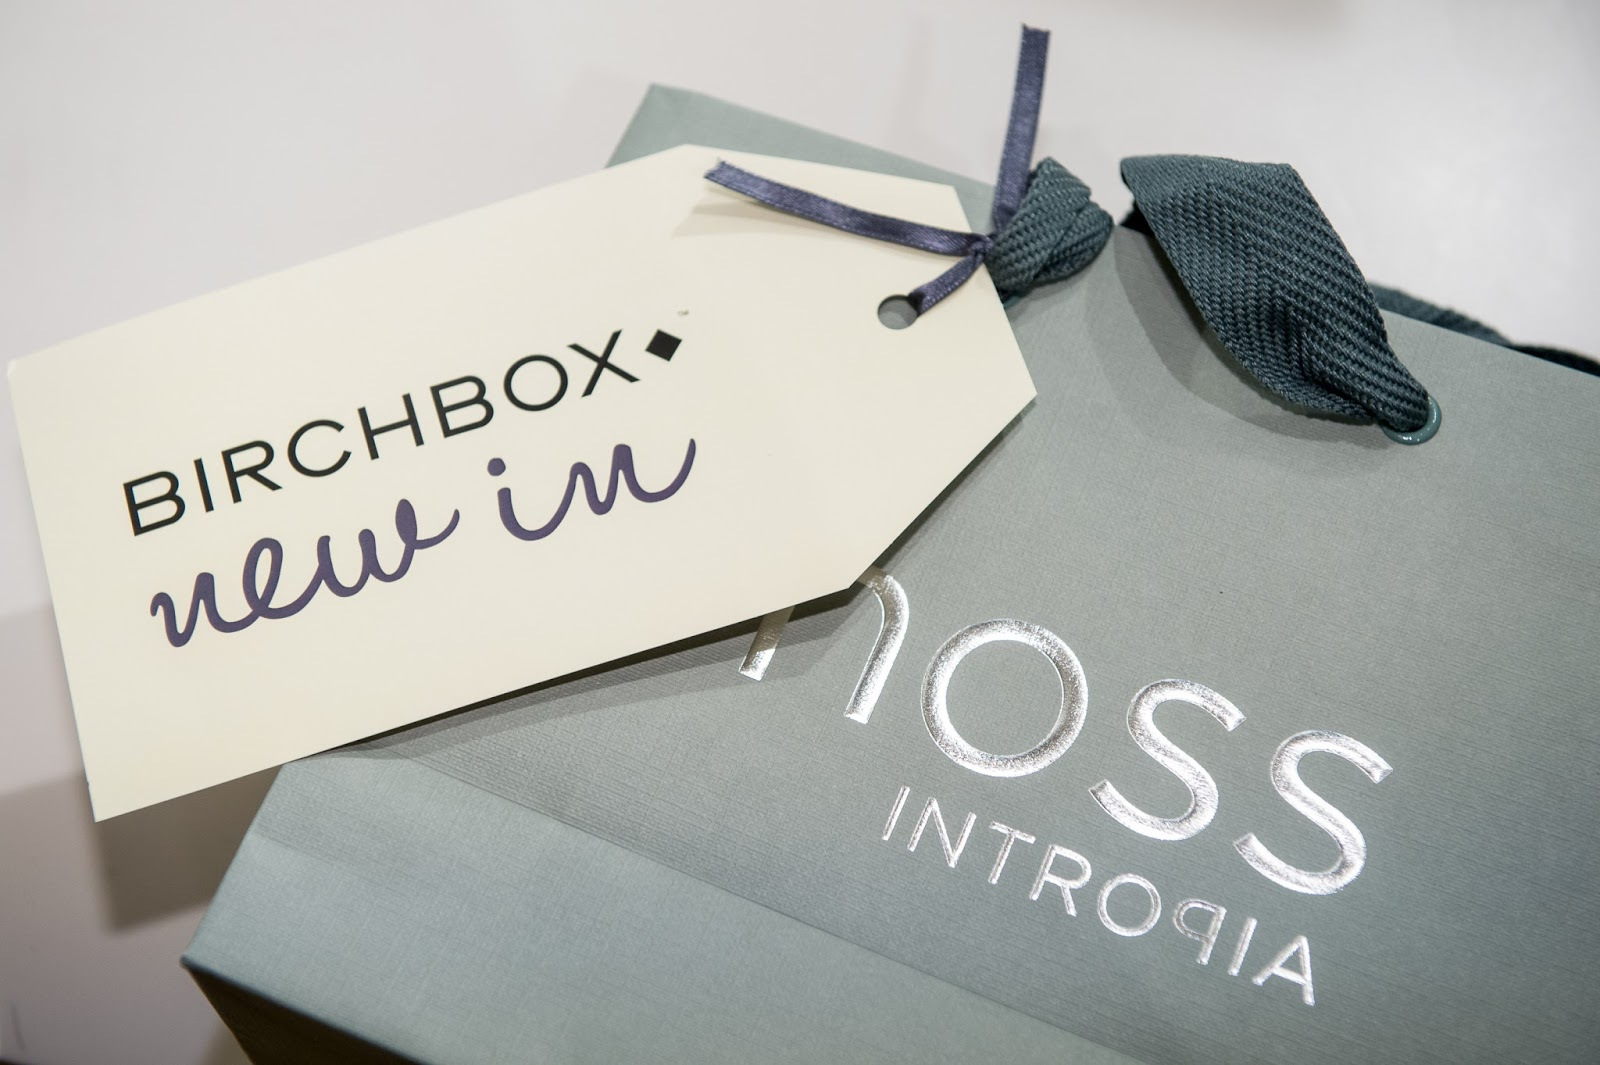 Birchbox+HossIntropia=New In